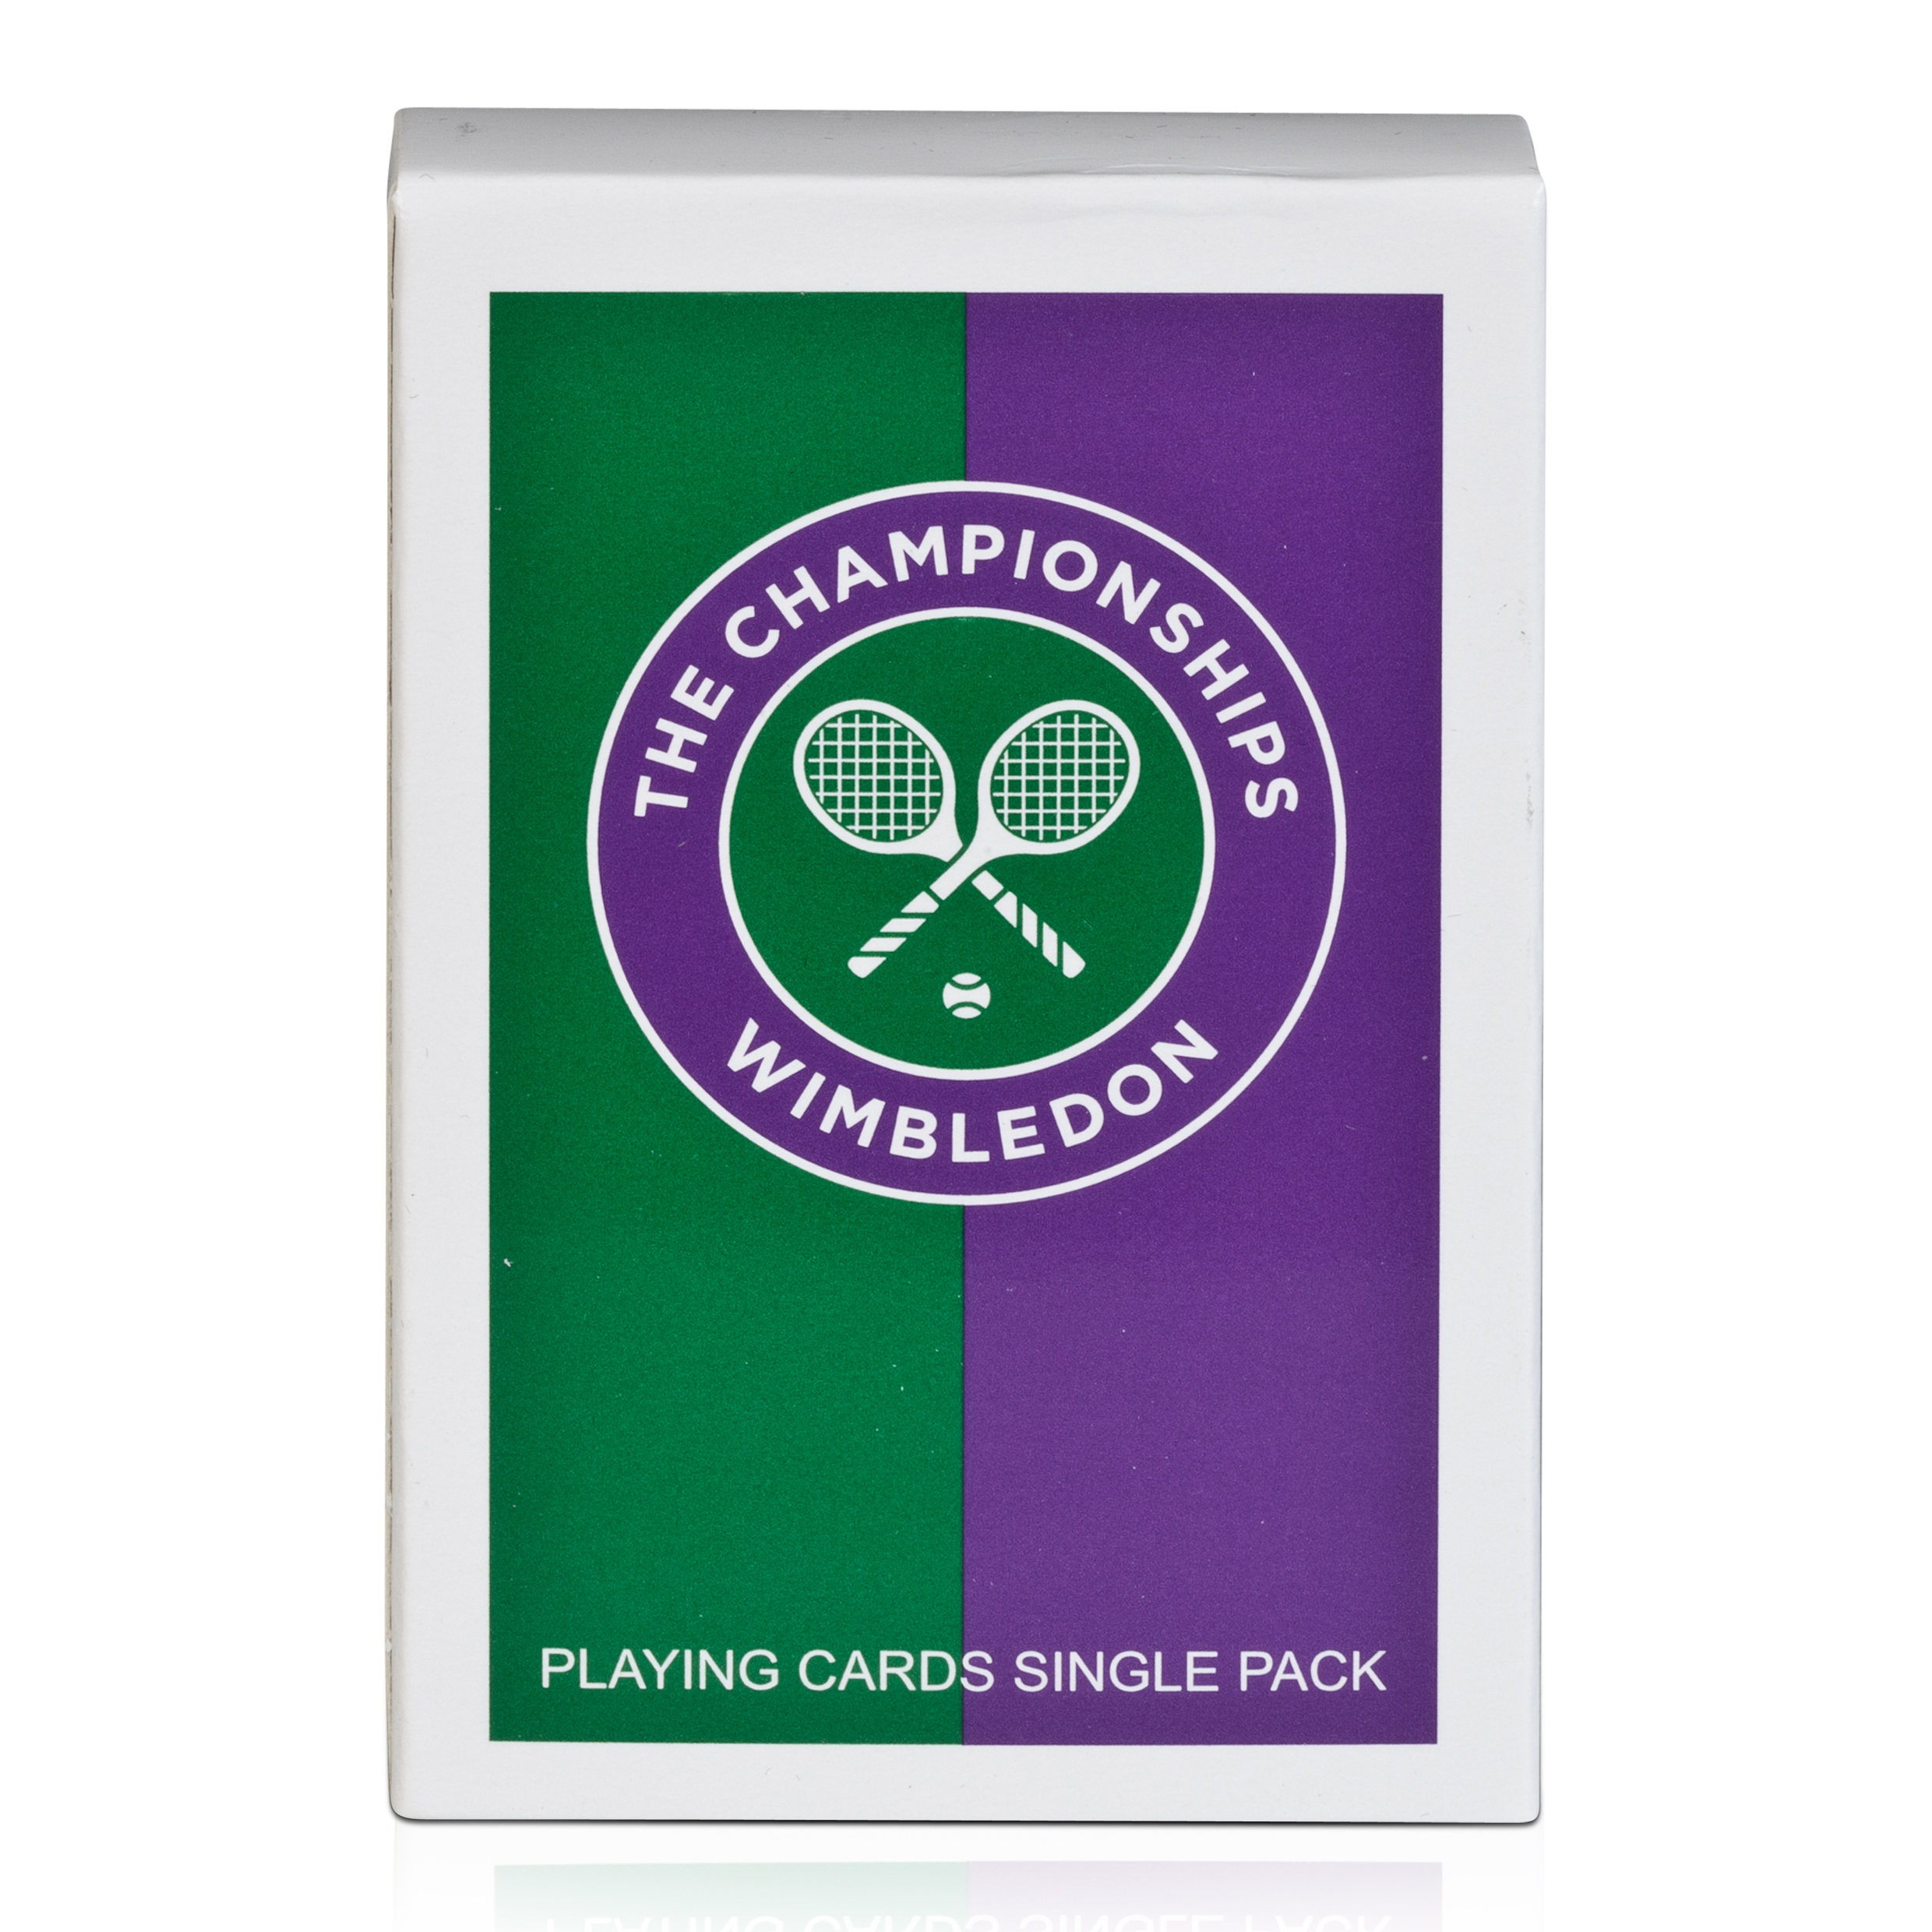 Wimbledon Single Pack of Playing Cards